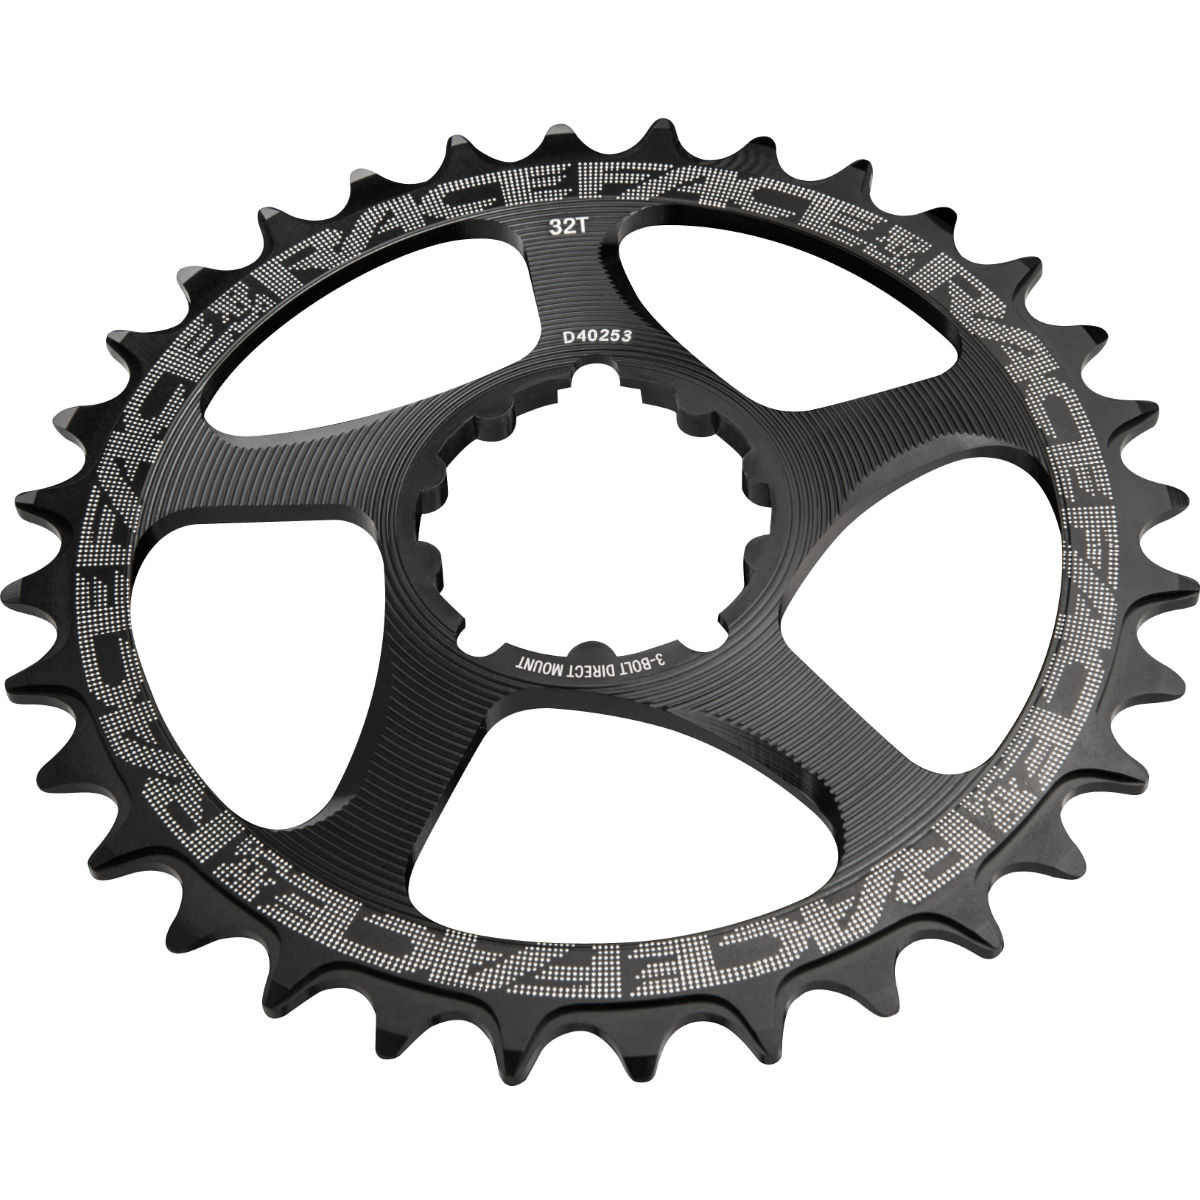 Race Face Direct Mount Sram Narrow/wide Single Chainring - 28t Black